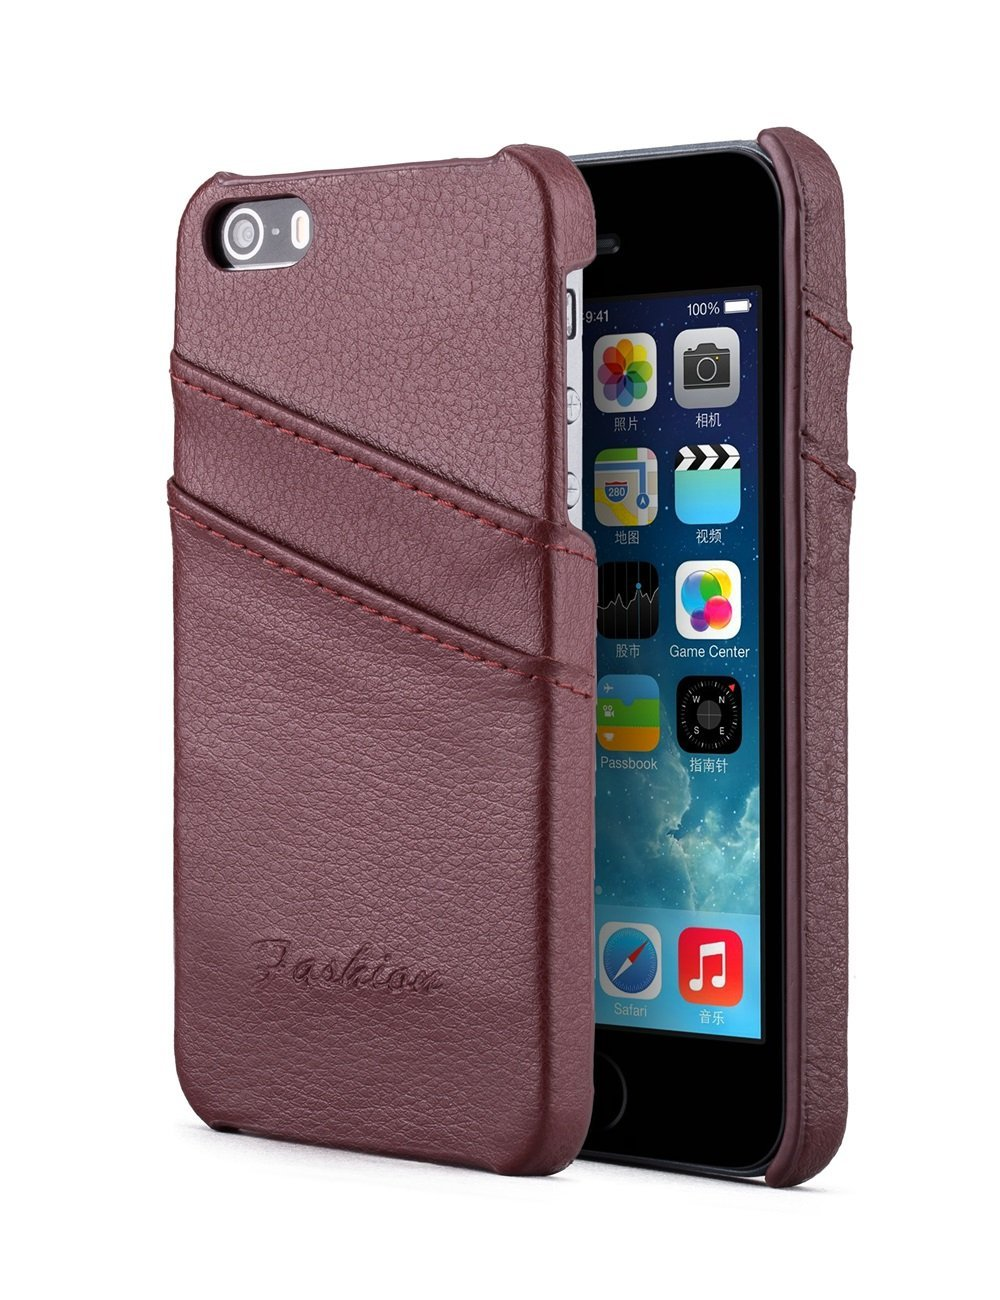 iPhone 5/5s/5SE Case, Nvwa Apple iPhone 5/5s/5SE Case Premium Genuine Leather Wallet Case with Card Holders for iPhone 5/5s/5SE -Brown